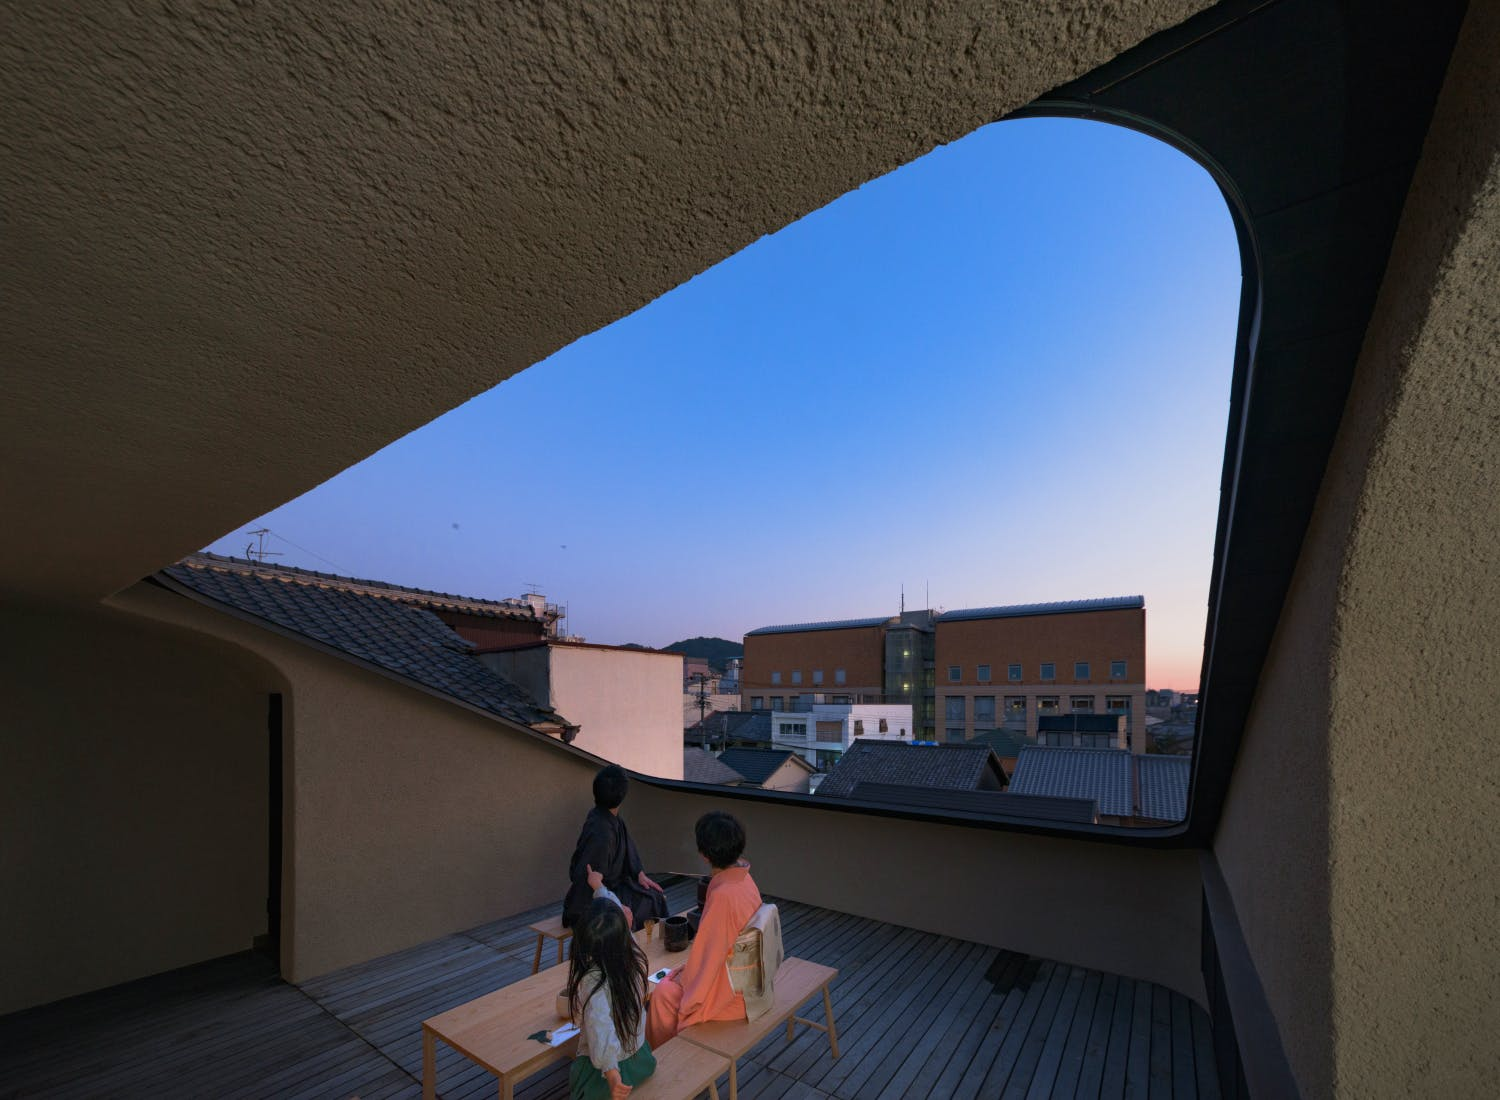 Kyoto Komatsu Residences - tea gathering in rooftop space